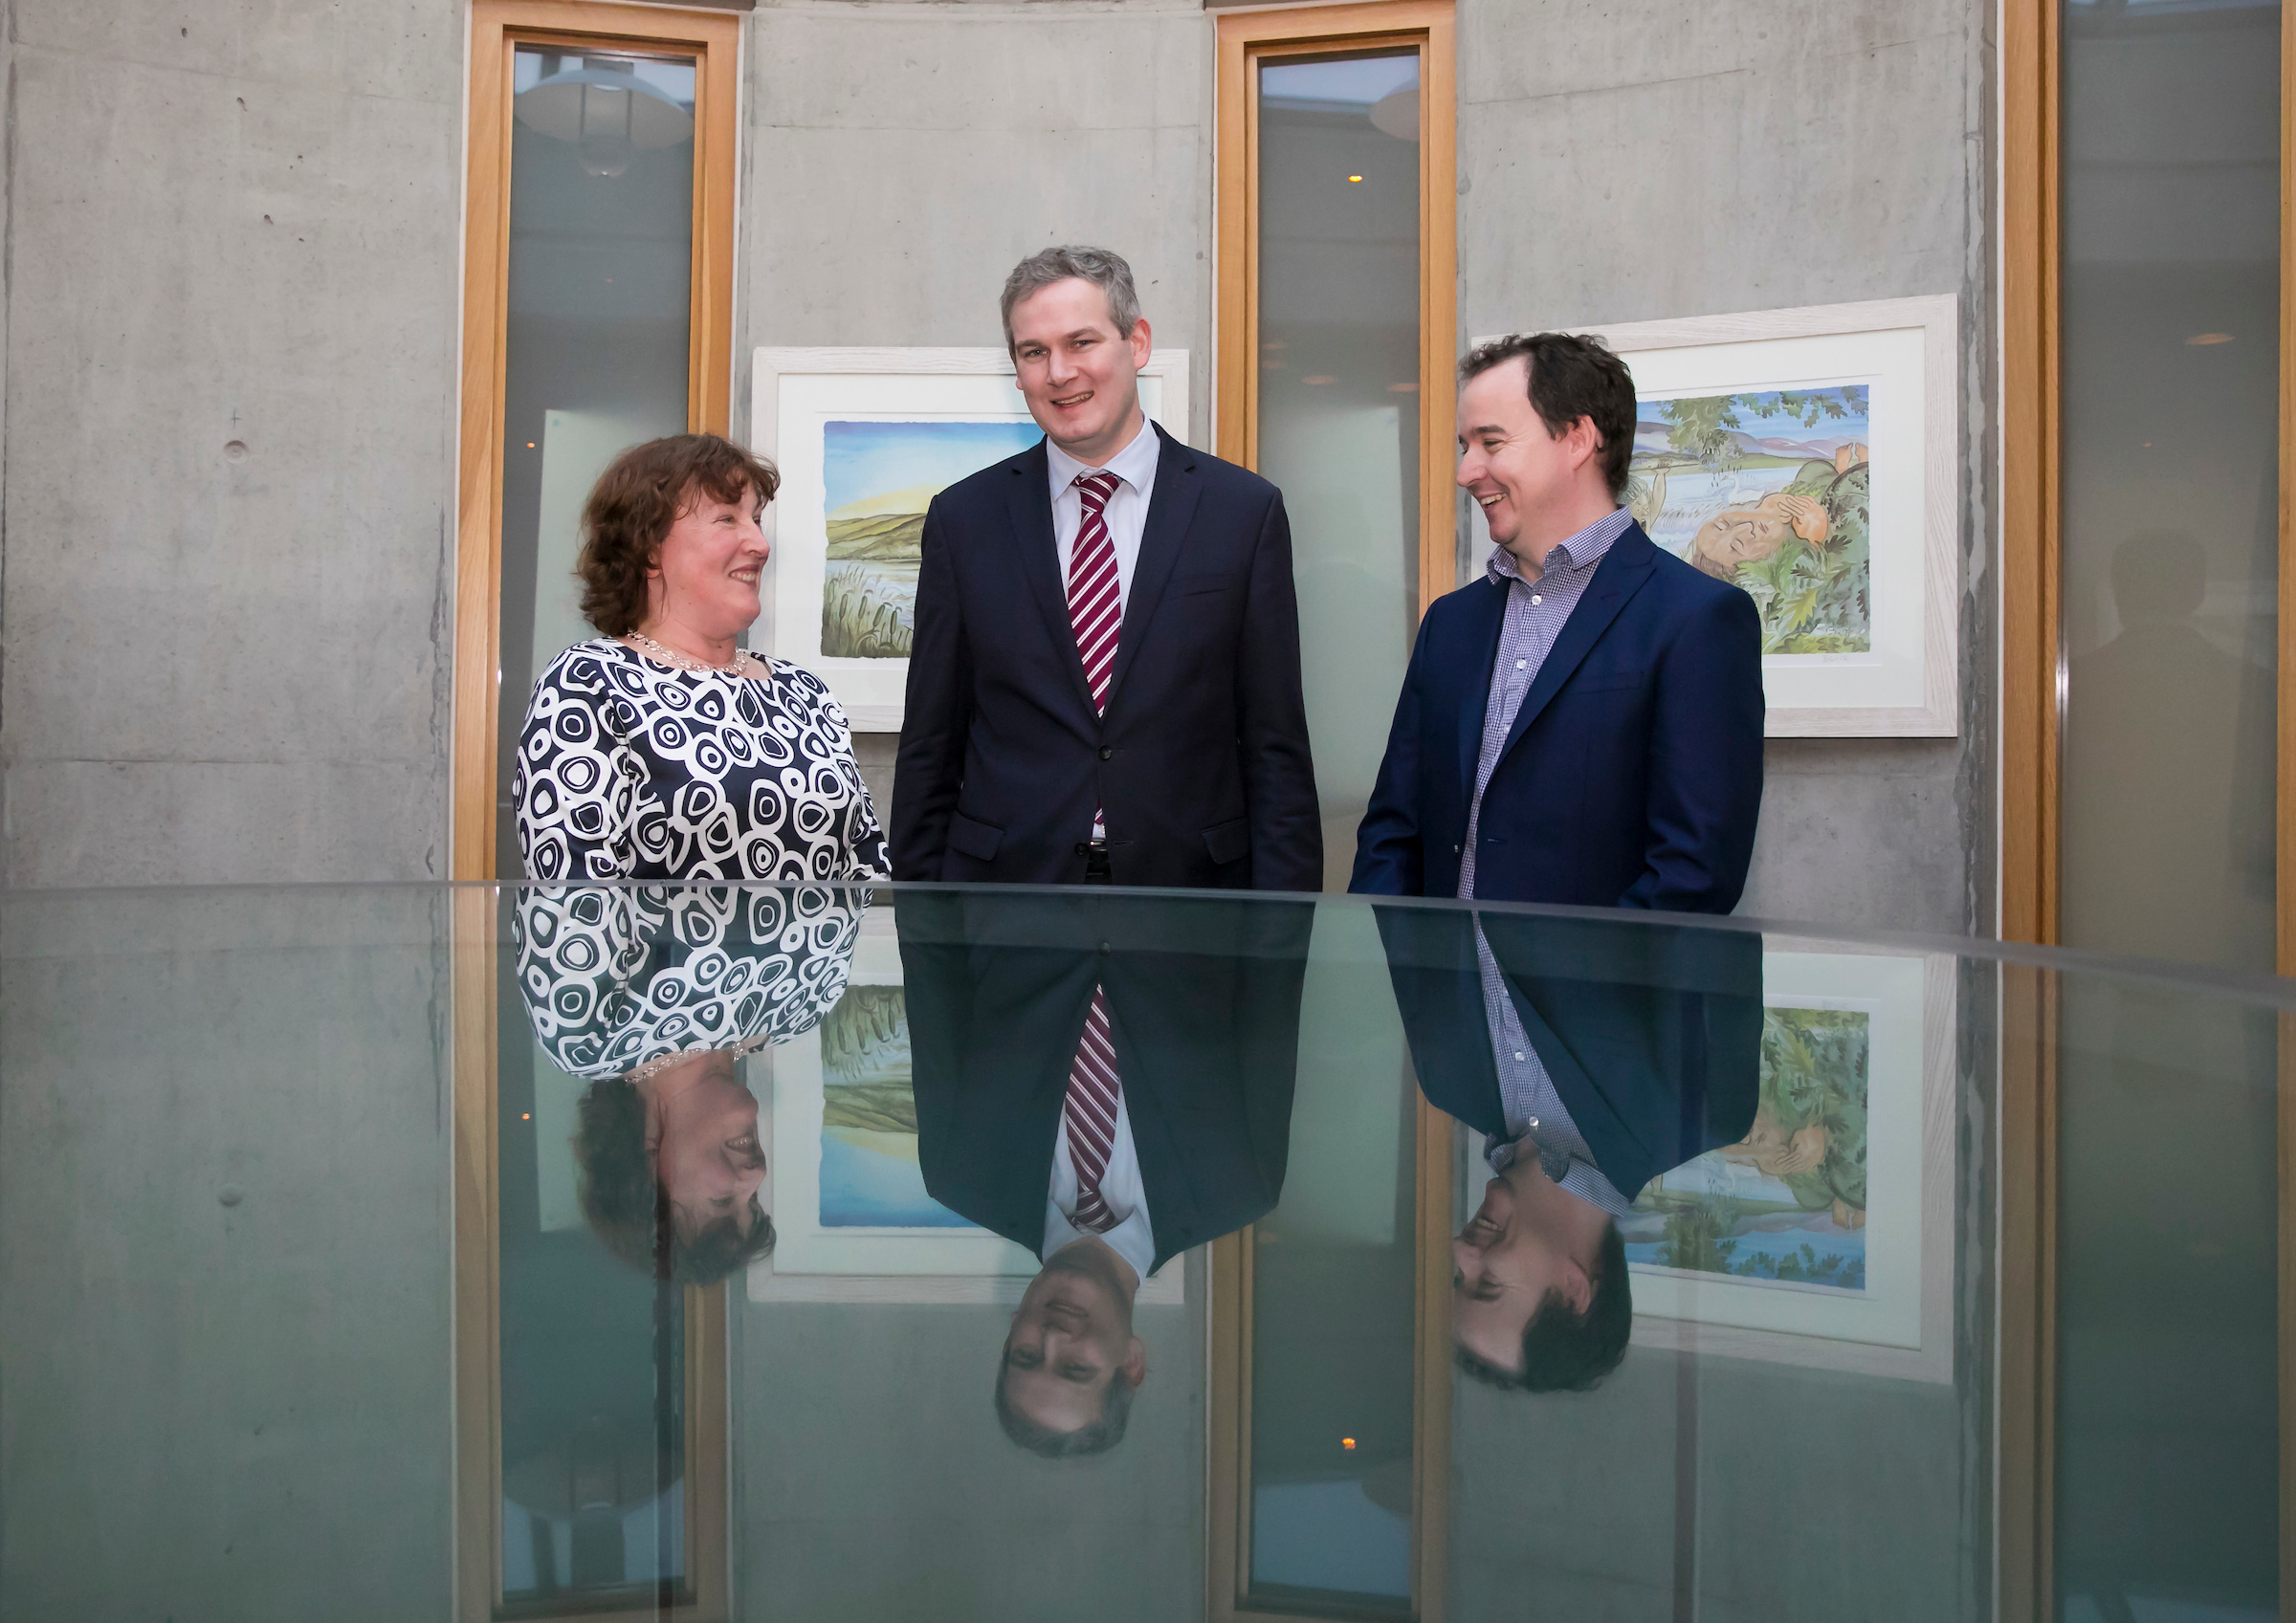 Pictured from left are Dean of Humanities, Dr Suzanne Denieffe, Minister Seán Kyne TD (Government Chief Whip and Minister of State for Gaeilge, the Gaeltacht and the Islands) and Dr Séamus Dillon of WIT's Department of Languages, Tourism and Hospitality (School of Humanities)